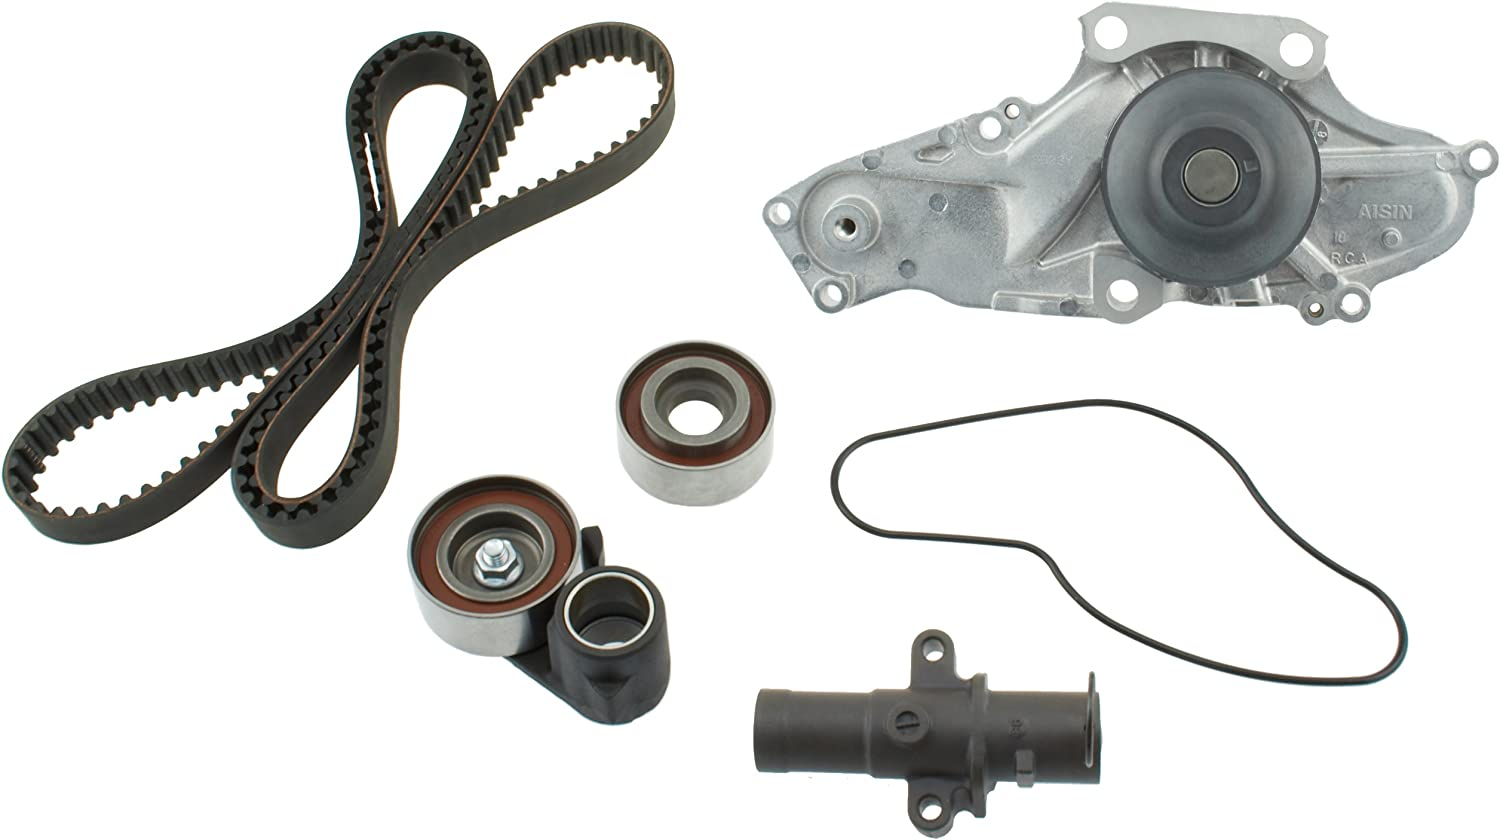 Aisin TKH-002 Engine Timing Belt Kit with Water Pump